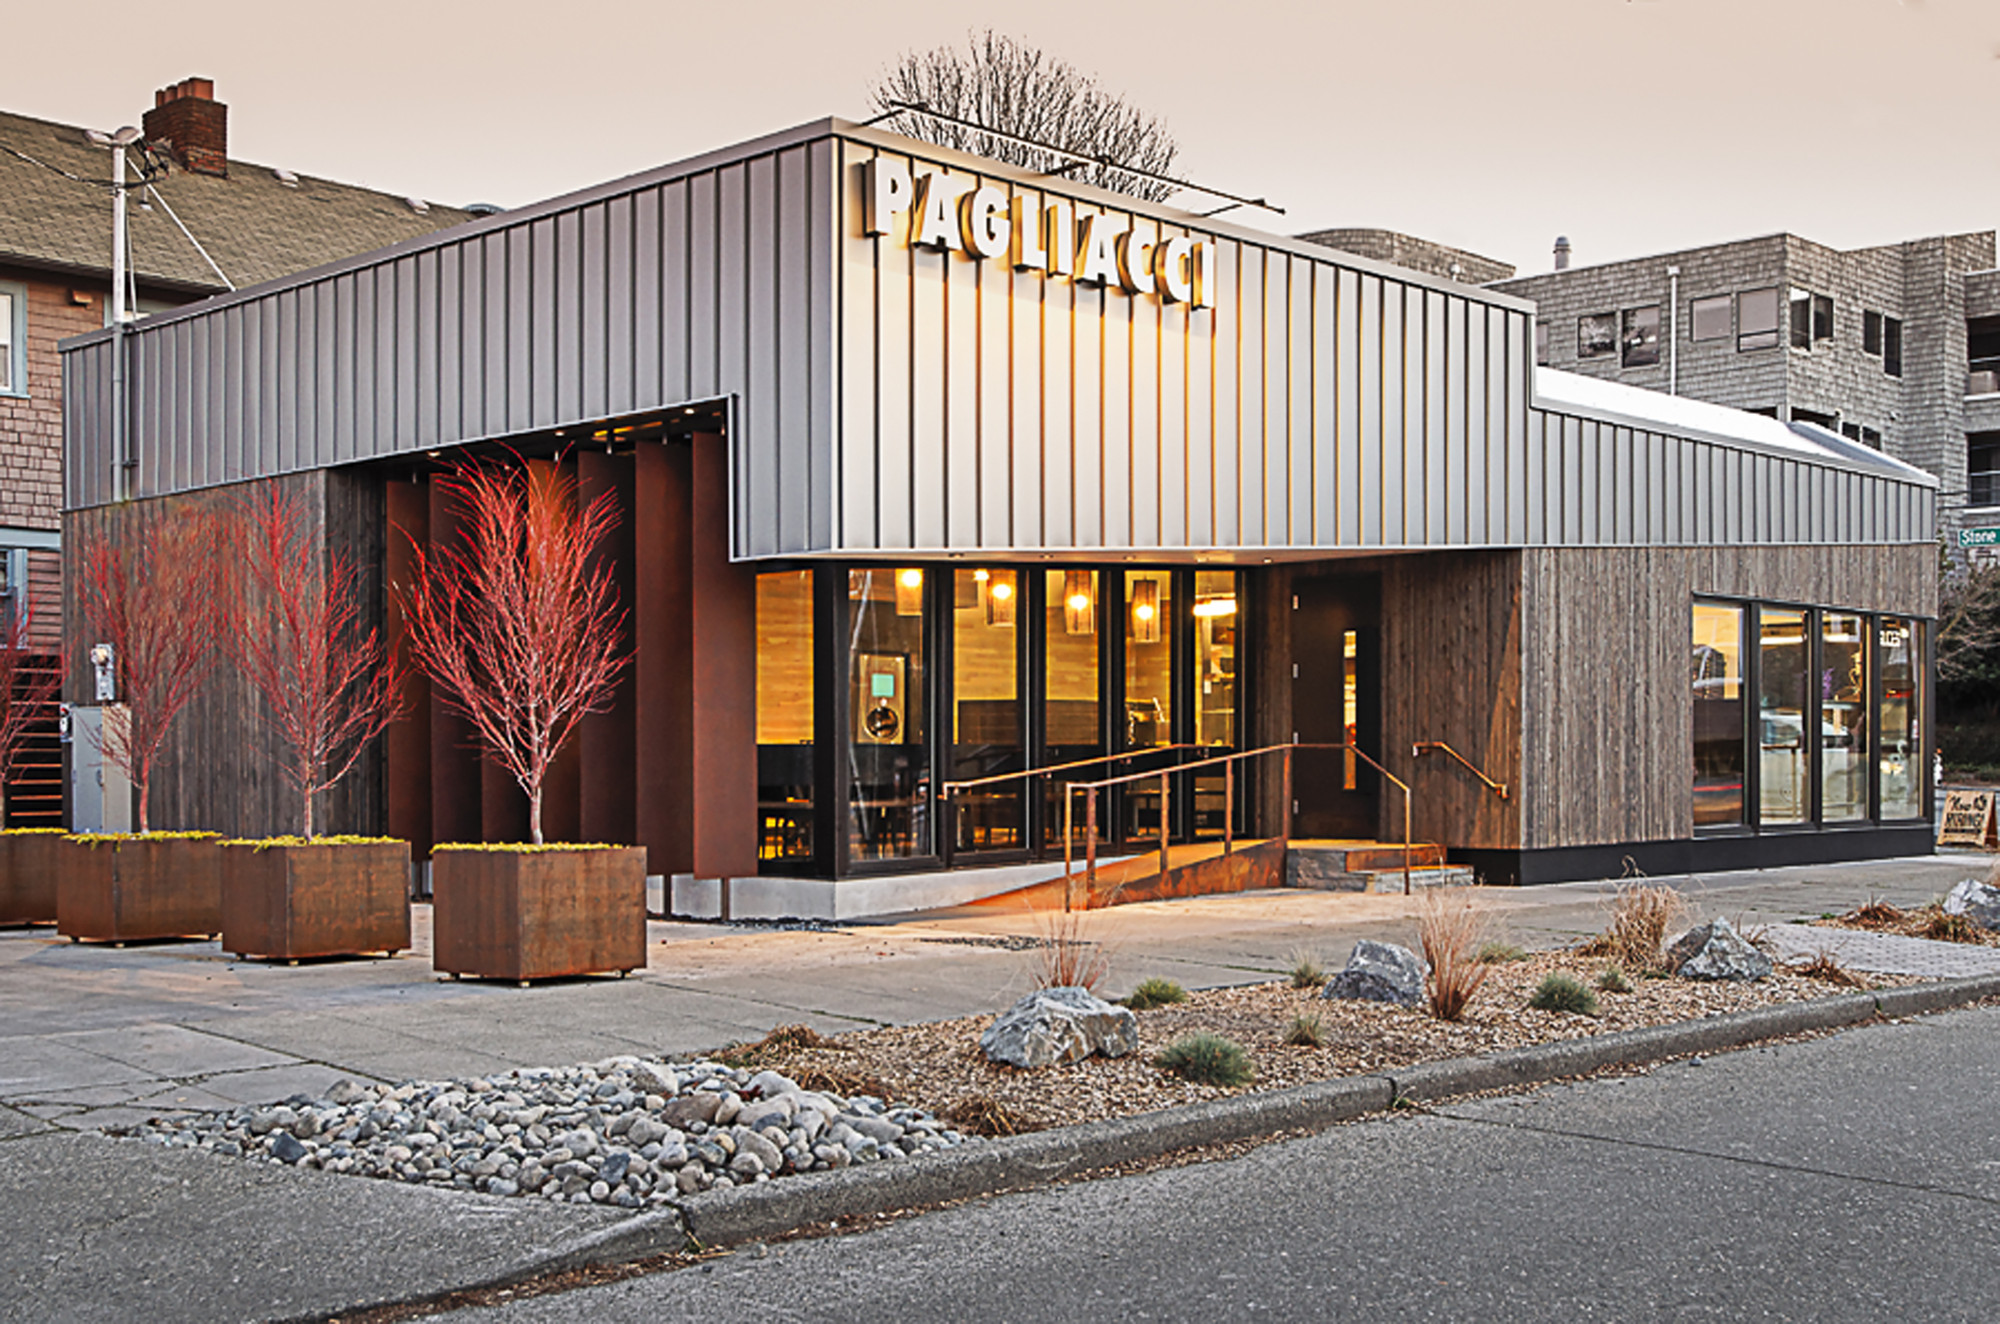 Pagliacci Pizza Floisand Studio Archdaily